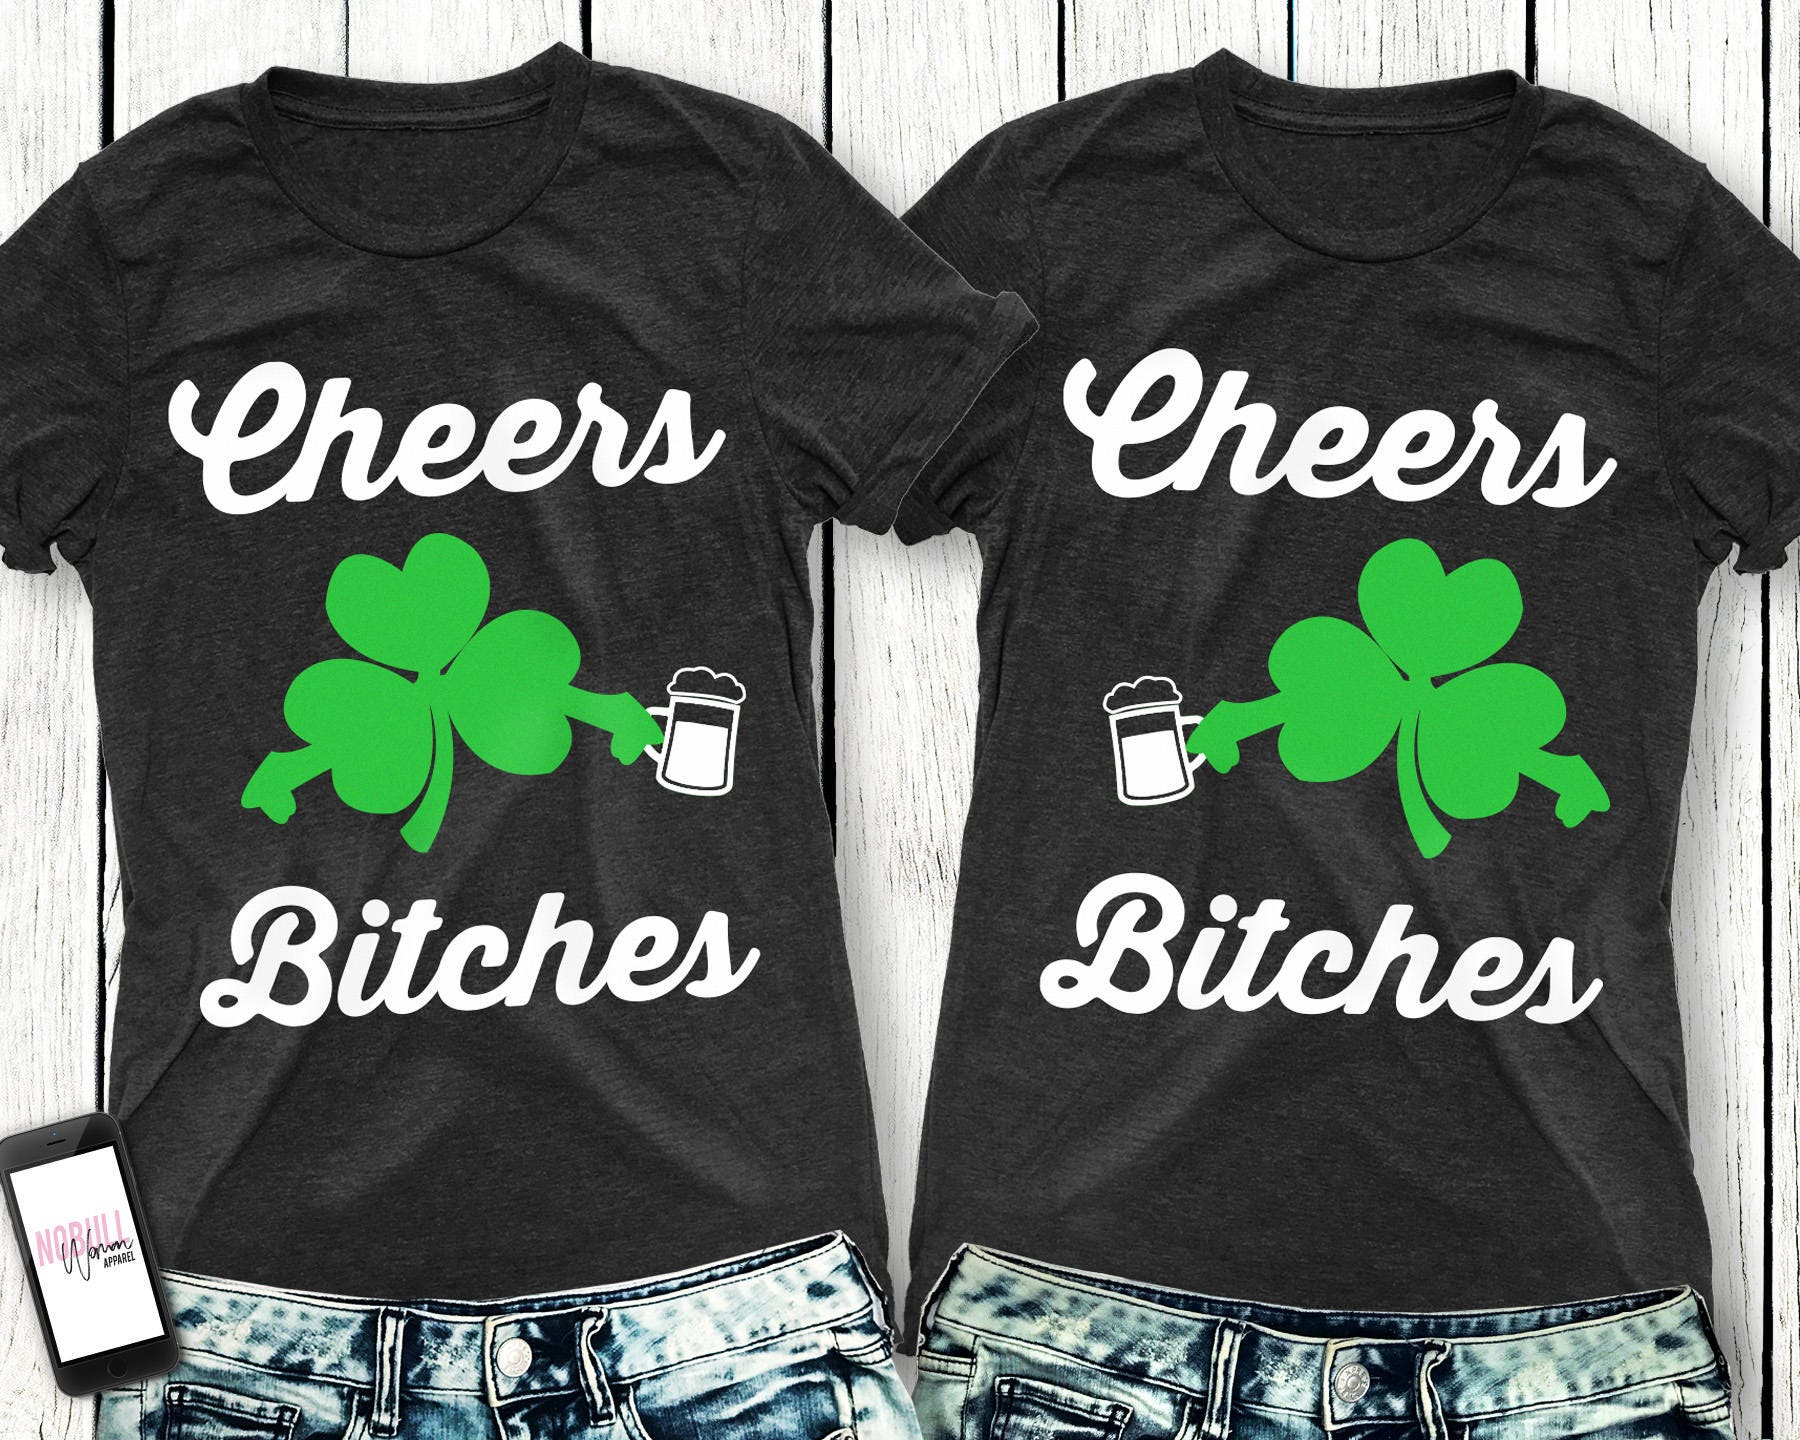 a5a240547 CHEERS BITCHES St. Patrick's Day Women's Shirt Tee | Etsy